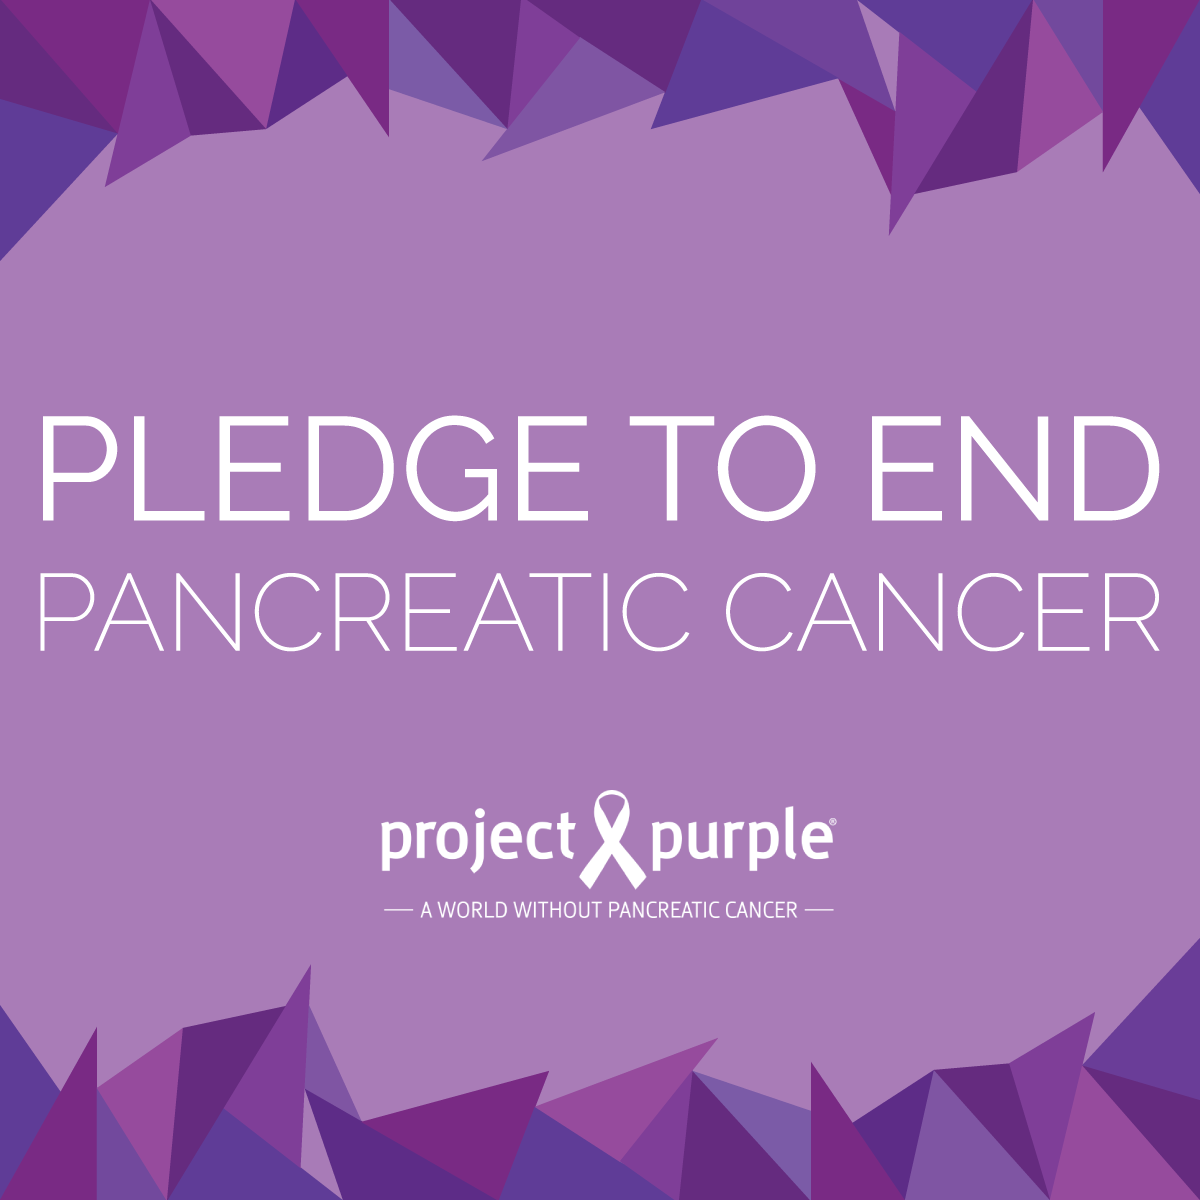 Pledge to End Pancreatic Cancer